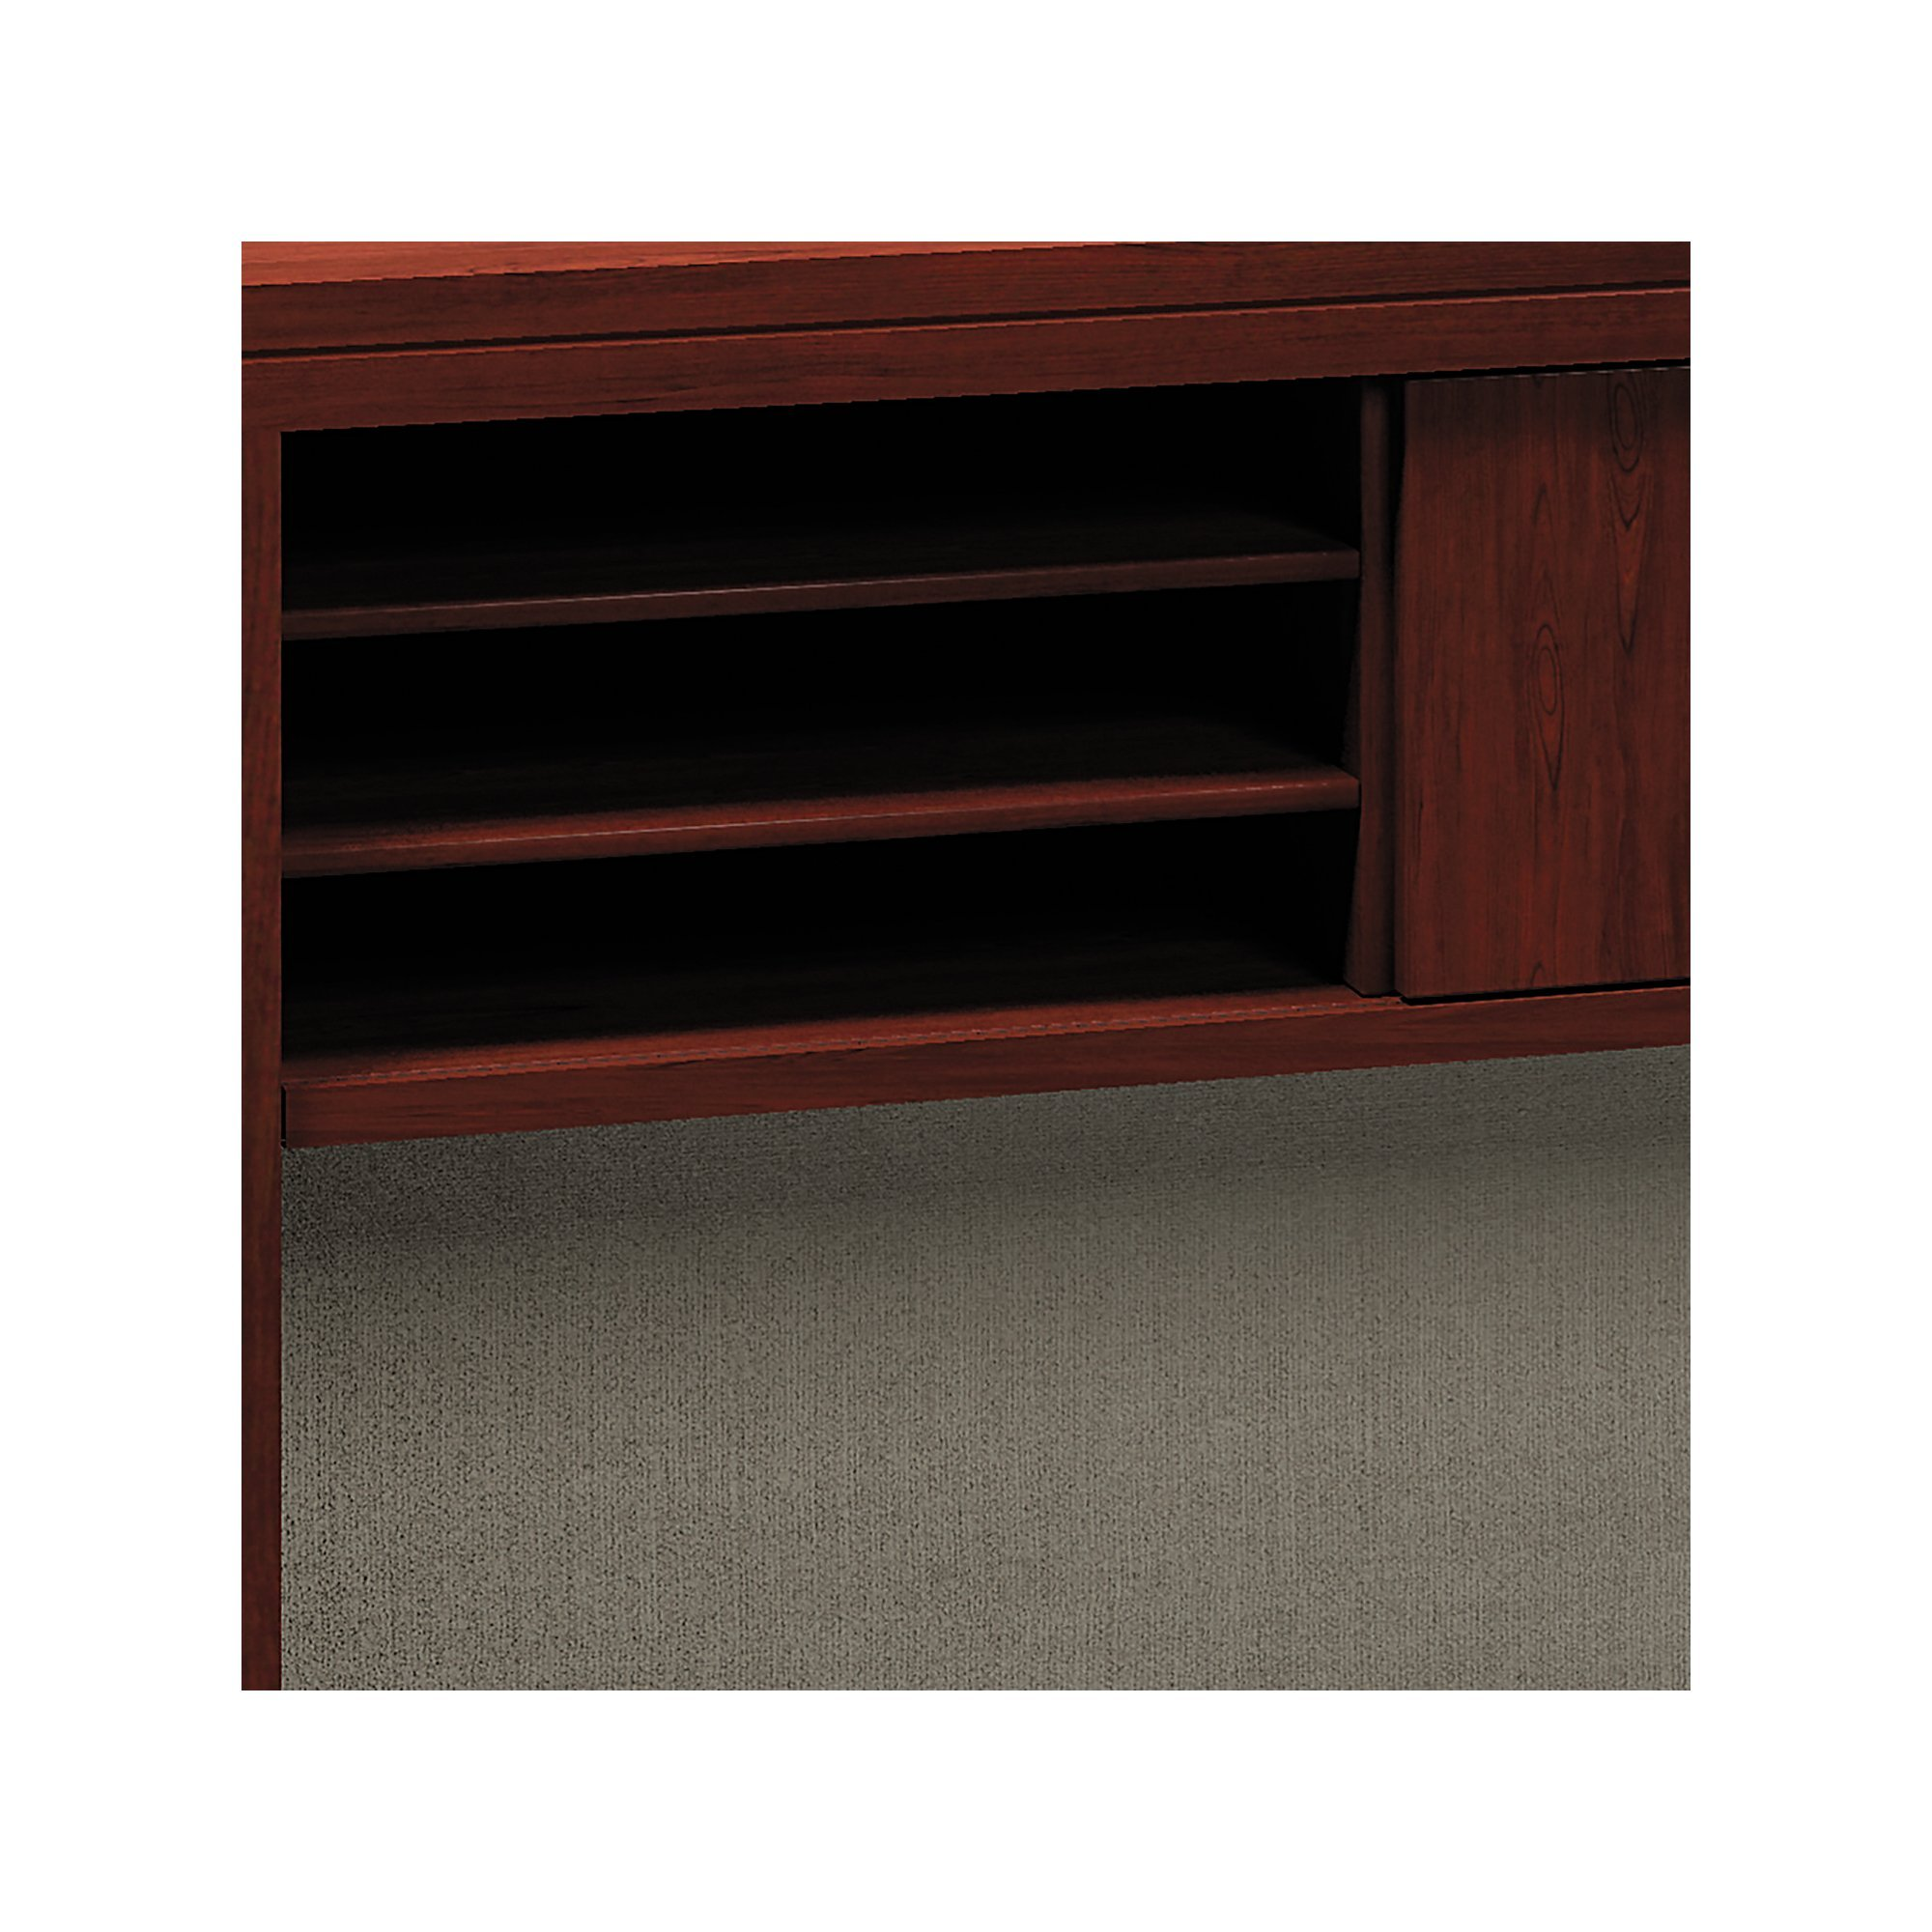 Bush Low Hutch, 60-Inch by 12-Inch by 27-5/8-Inch, Harvest Cherry by Bush (Image #3)